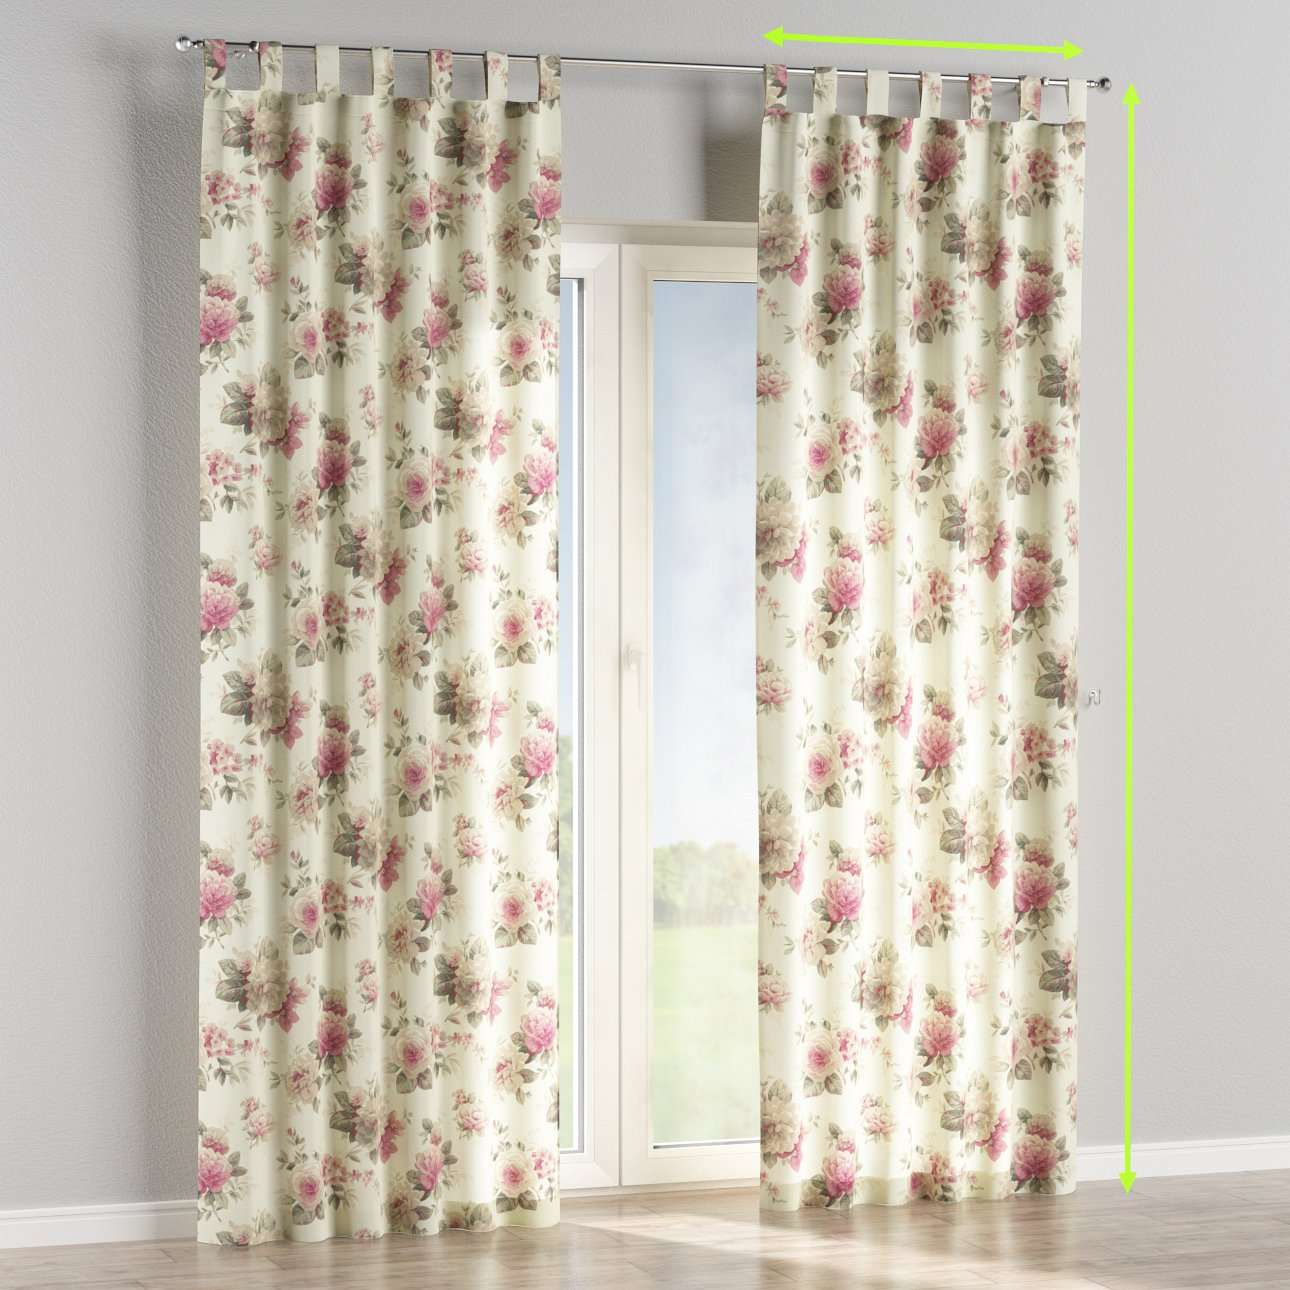 Tab top curtains in collection Mirella, fabric: 141-07